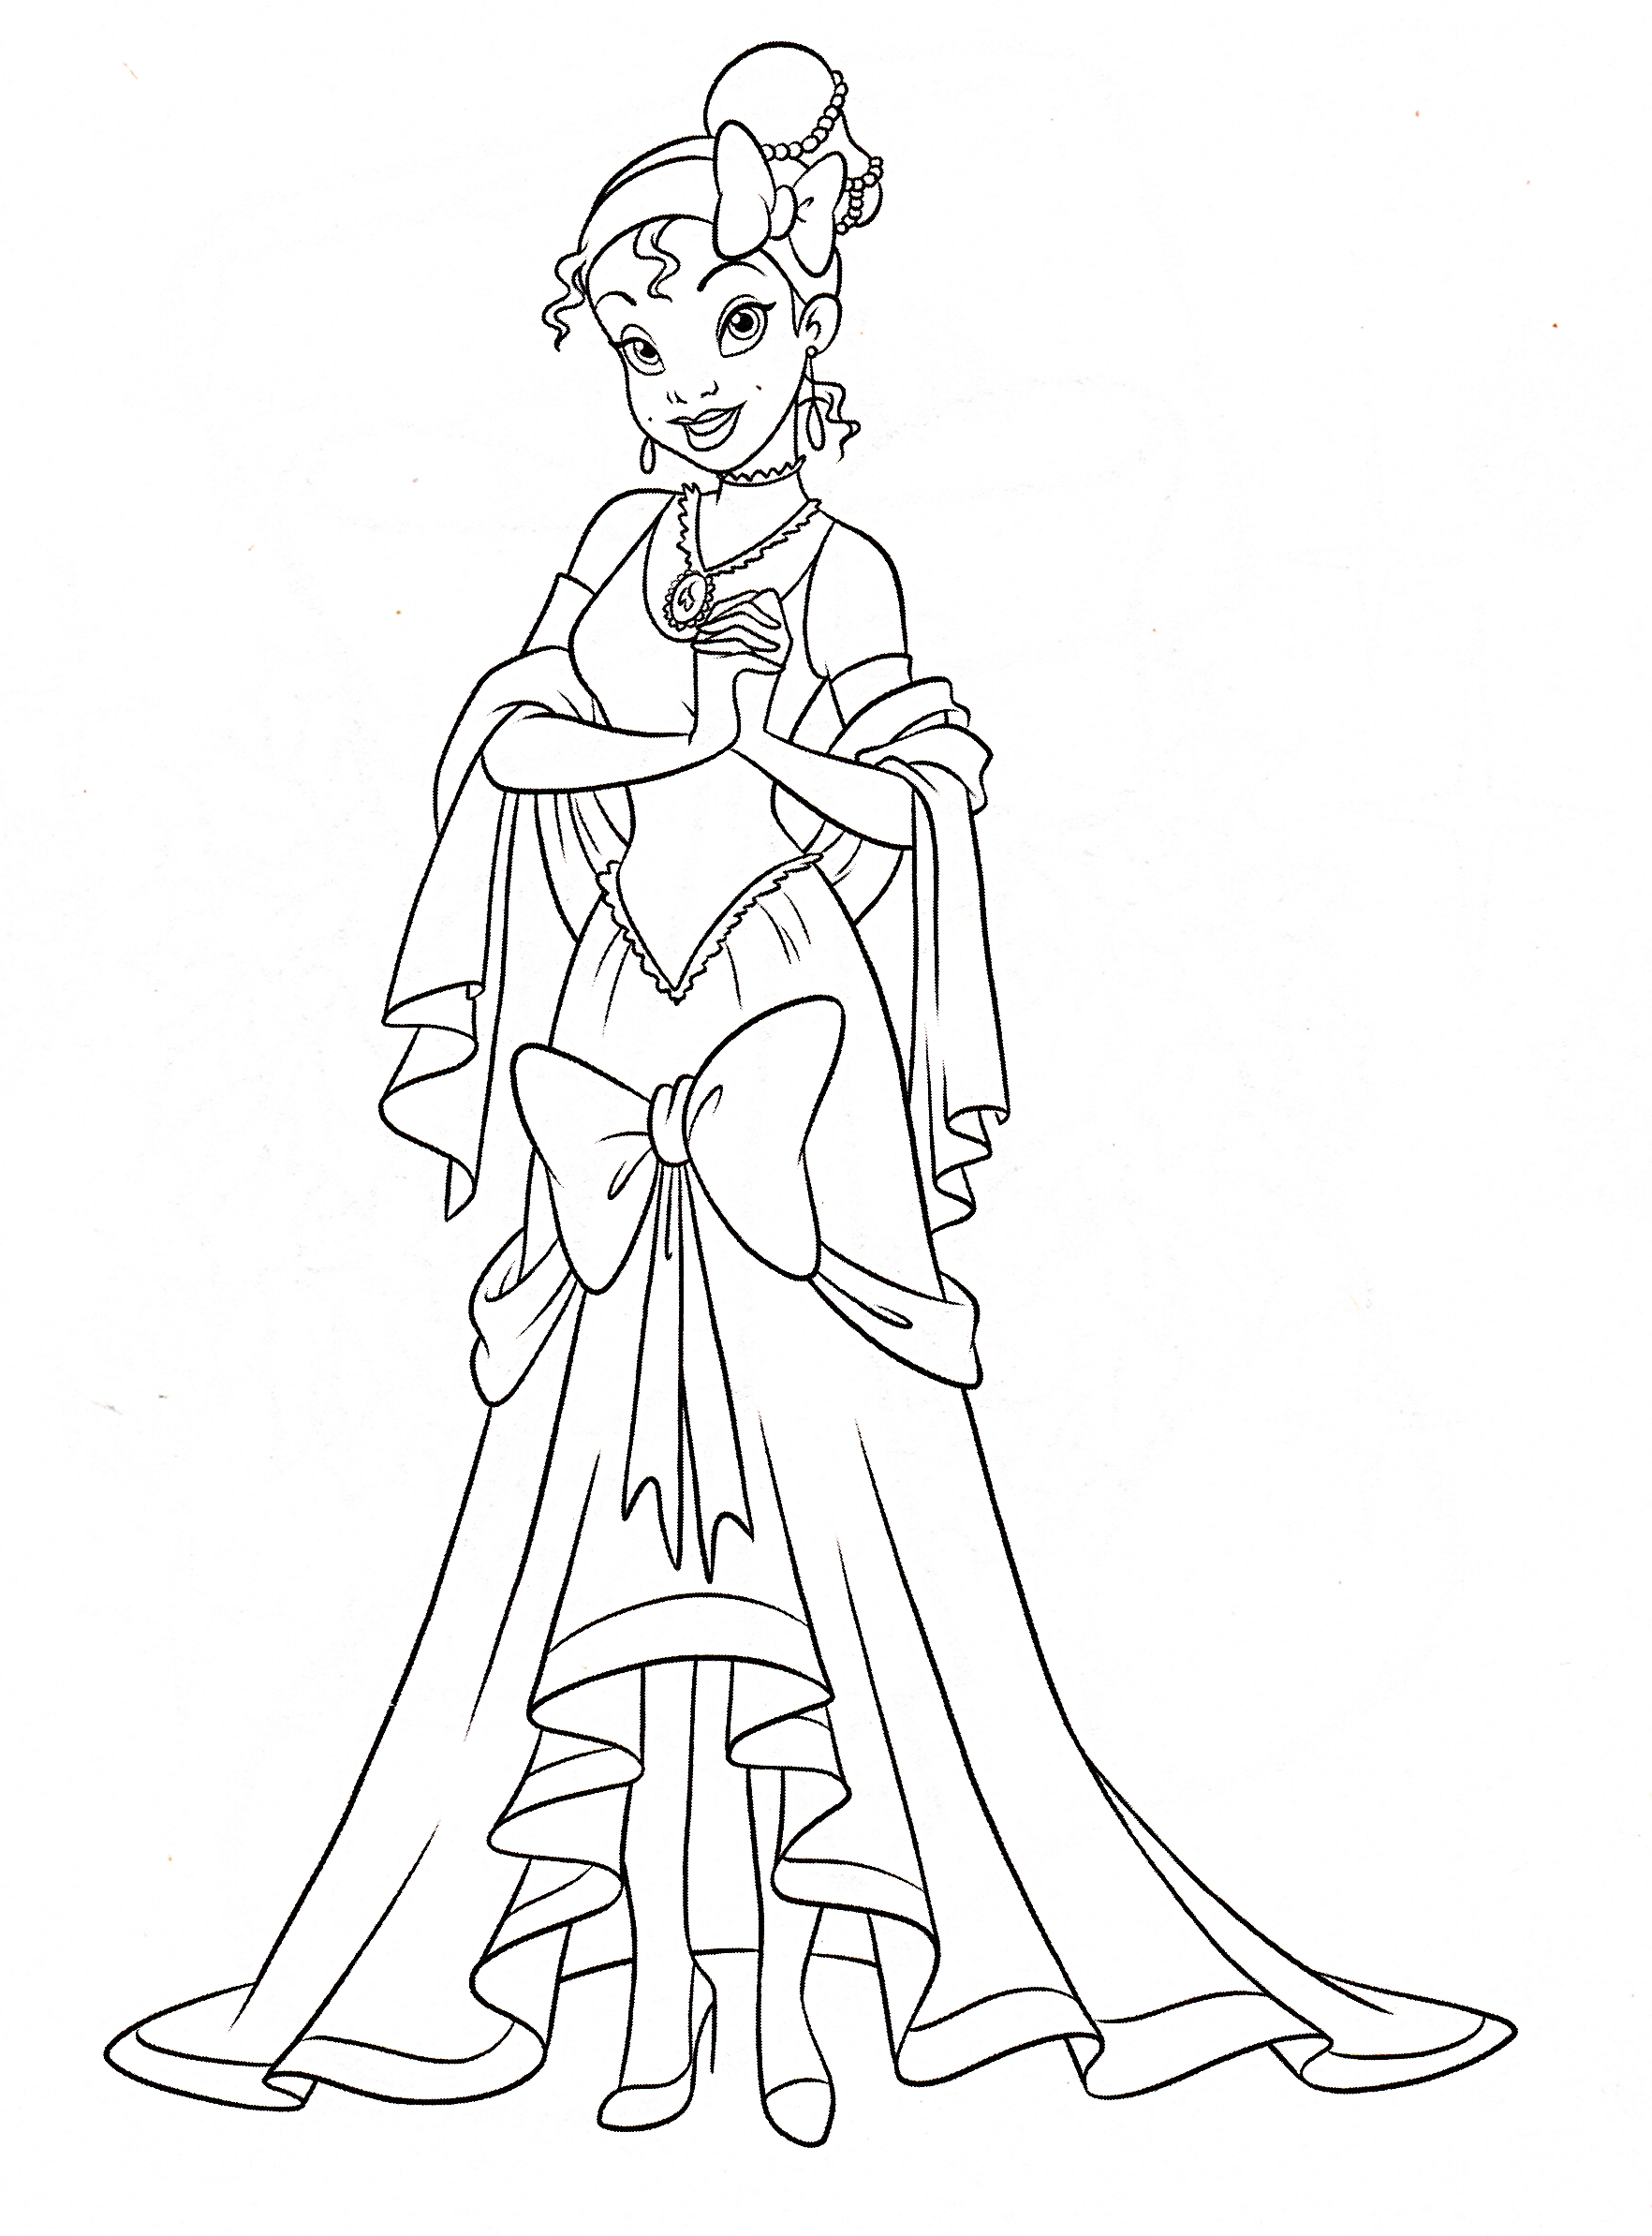 disney princess characters coloring pages - photo#26